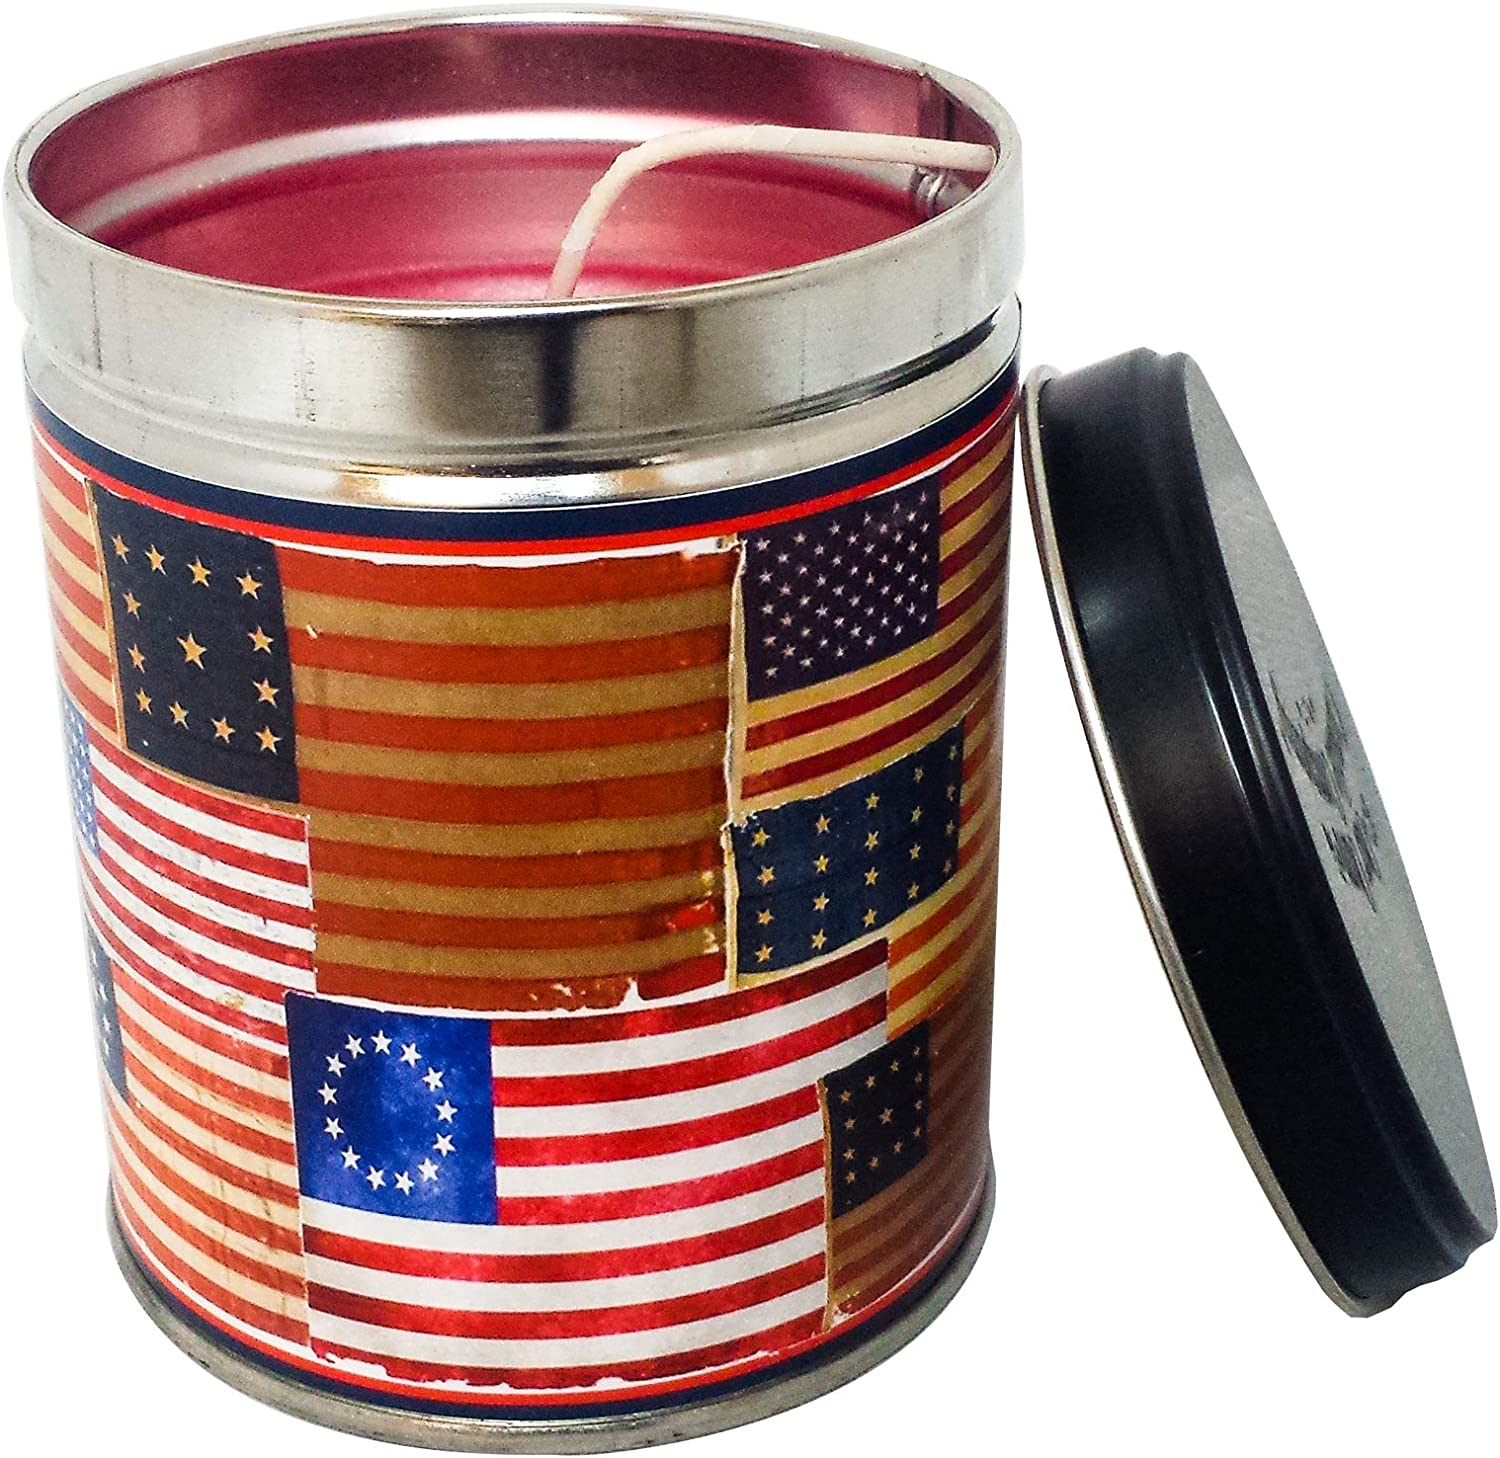 Our Own Candle Company Hot Apple Pie Scented Candle in 13 Ounce Tin with an American Flag Label